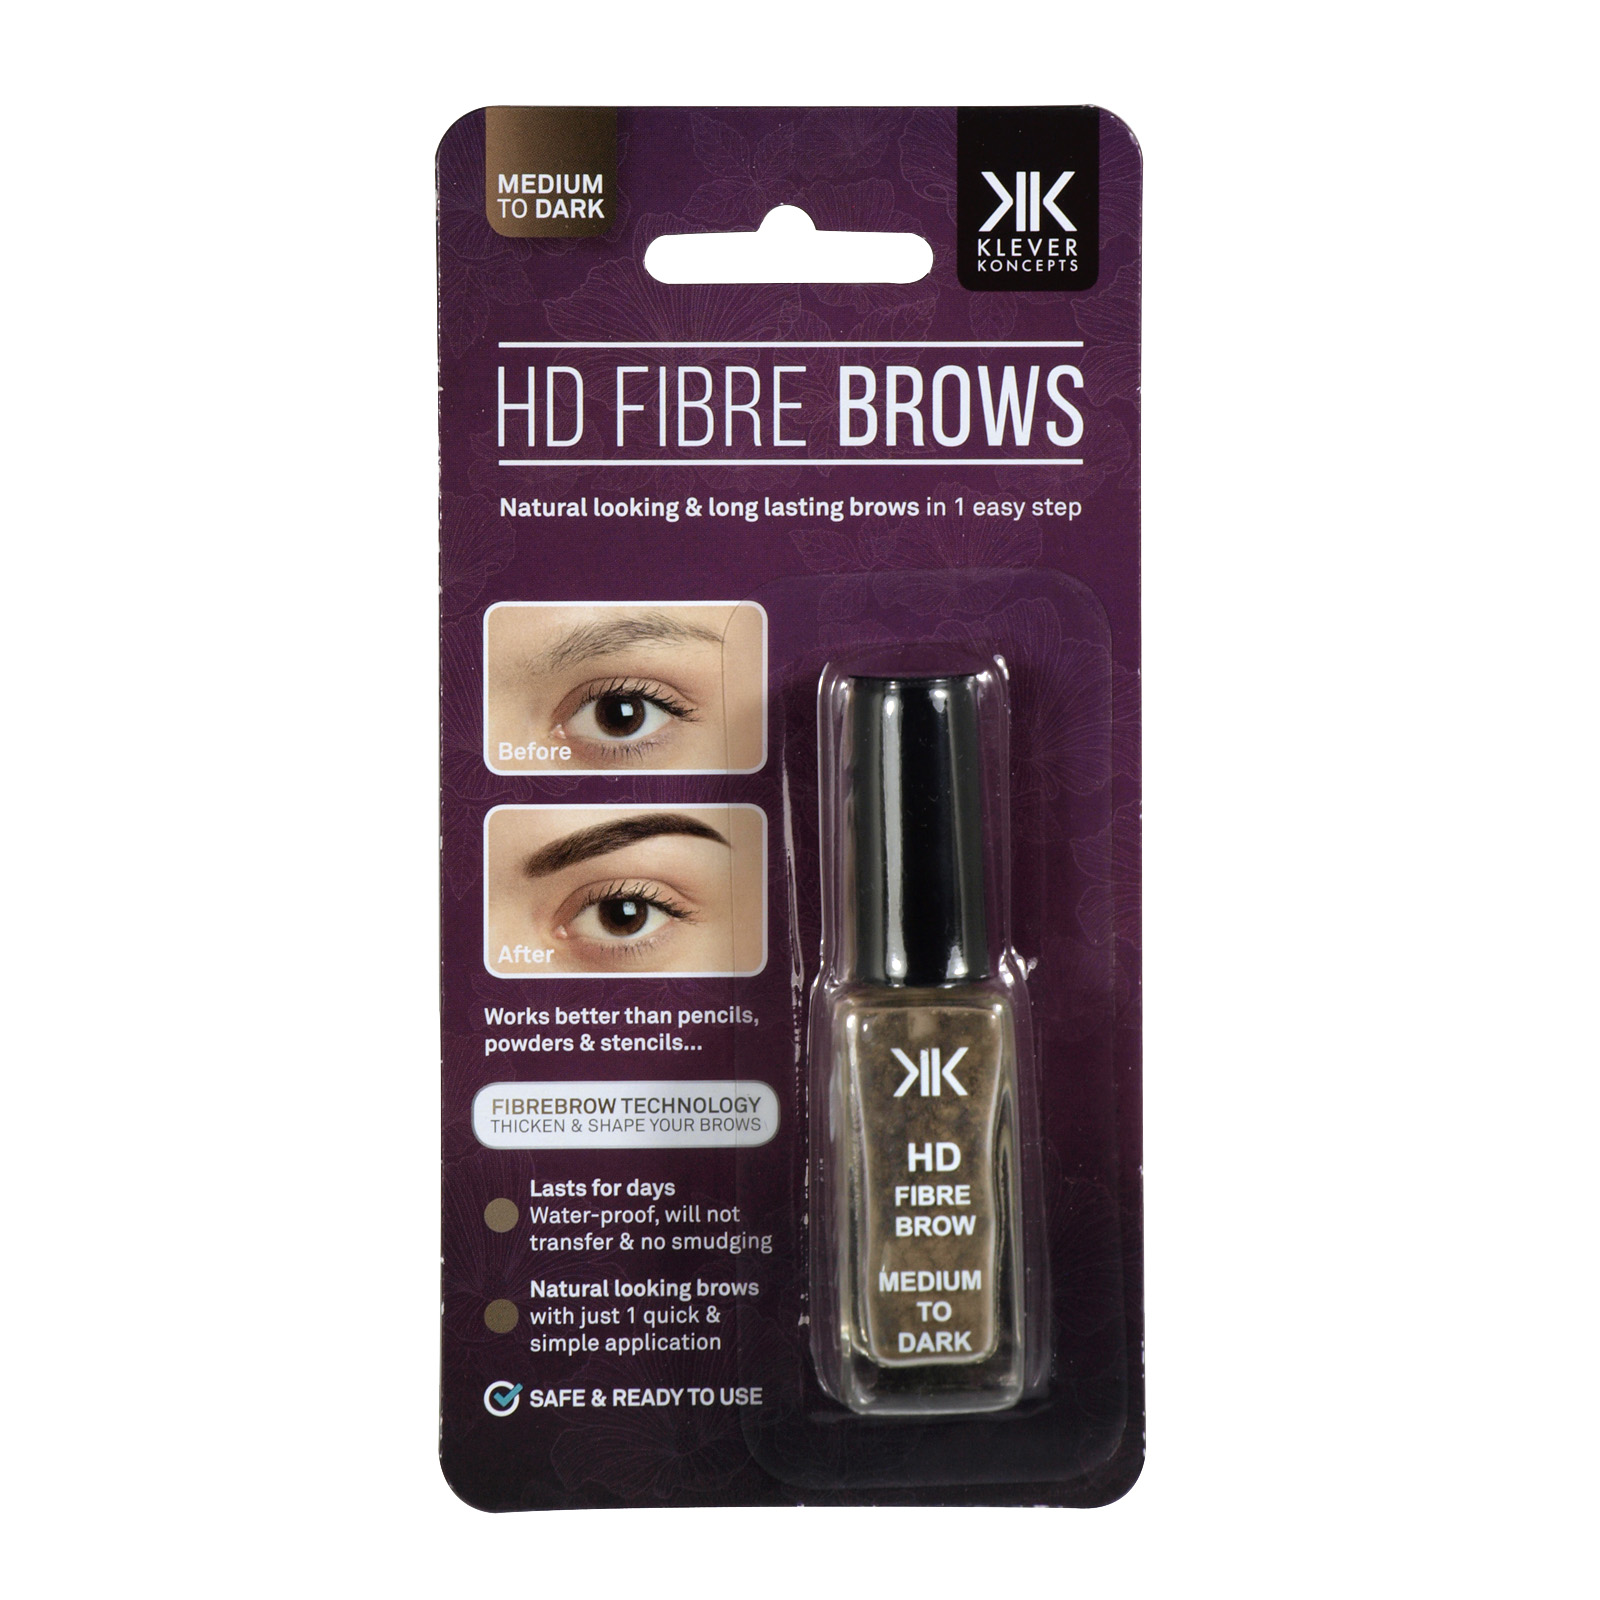 DMM HD FIBRE BROWS MEDIUM TO DARK